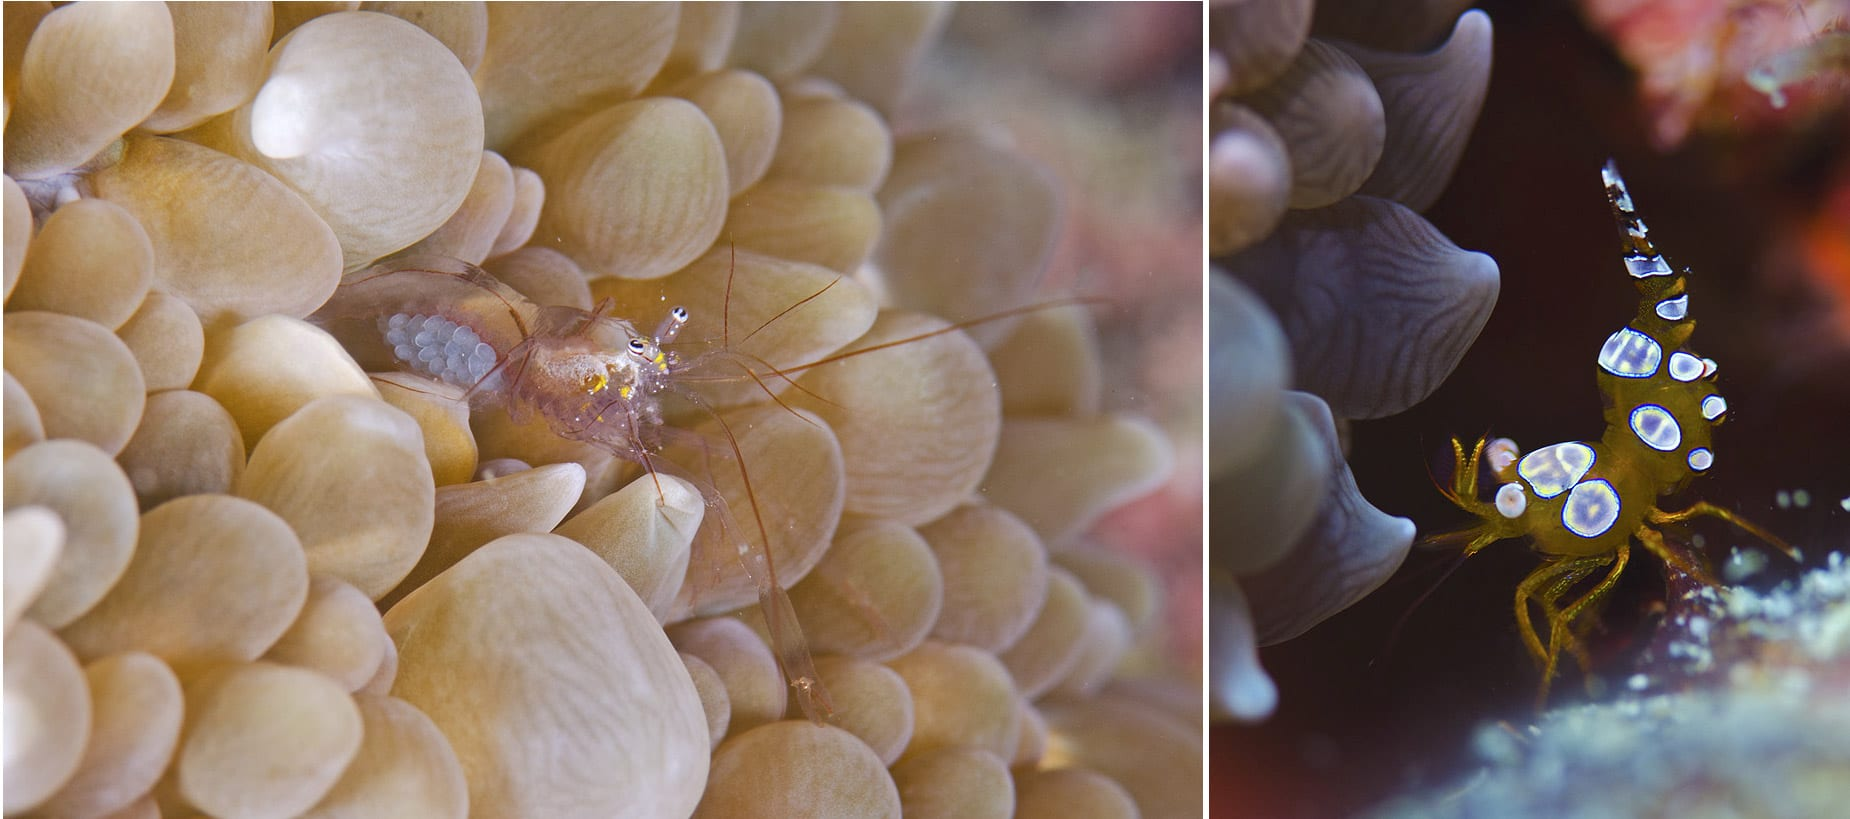 Some shrimp prefer to associate with anemone relatives (cnidarians) like coral. Bubble coral (Physogyra sp.) are hard coral that possess bulbous tentacles that are extended during the daytime giving the coral a bubbly appearance. (Left) An unidentified shrimp extends itself out of its bubble coral home to filter feed; developing eggs are clearly visible under its transparent abdomen. (Right) Squat shrimp (Thor sp.) are often called sexy shrimp because of their provocative dance. Their quirky abdominal movements, often in sync with one another, are amusing to observe and can captivate divers for long underwater minutes; it's as if they're performing in a talent show.